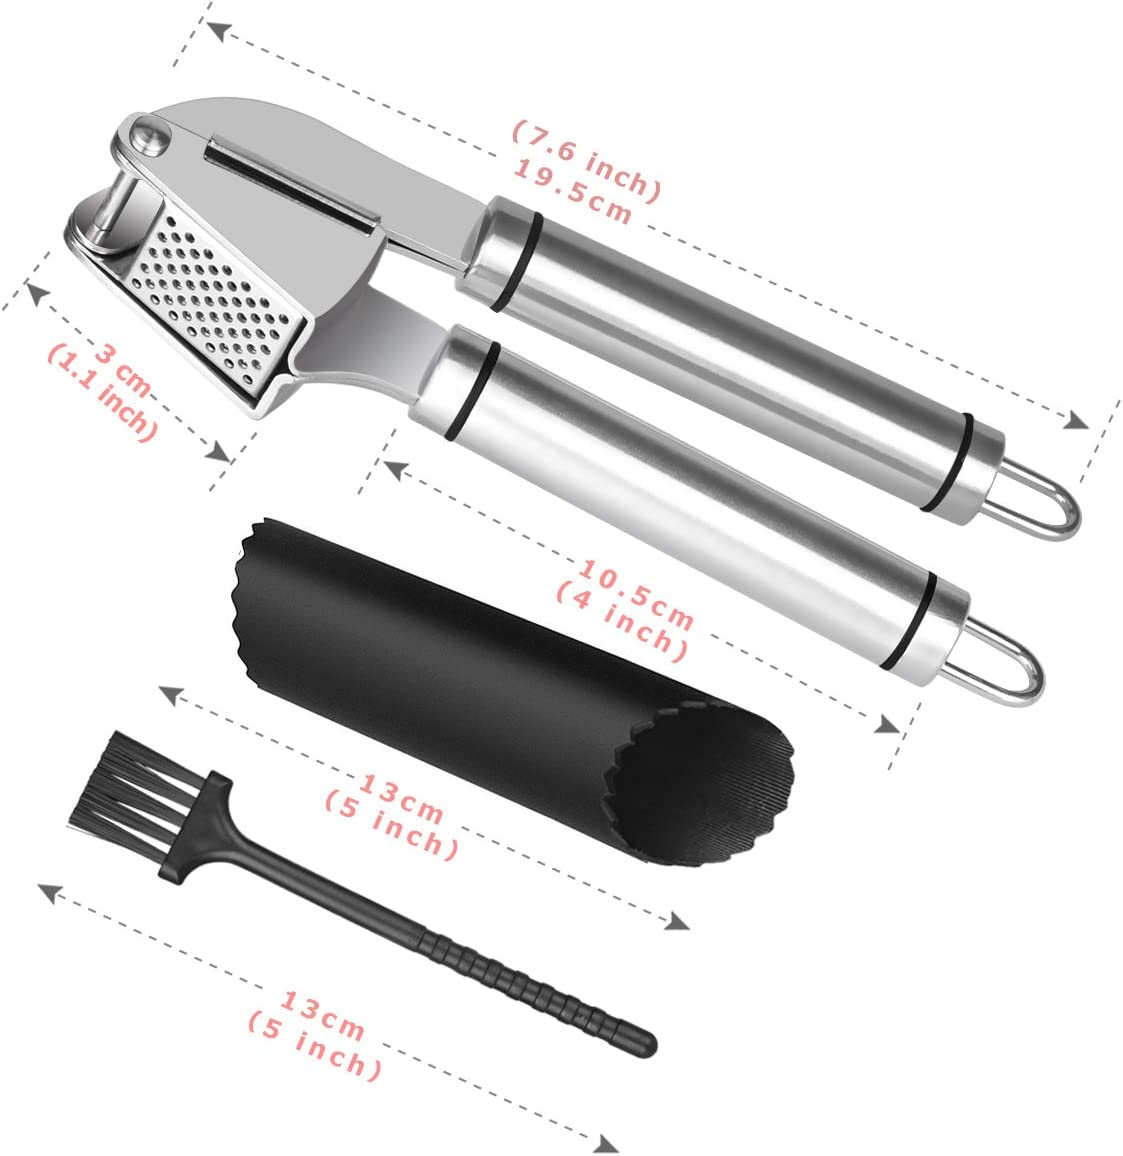 ECHOICE Garlic Crusher Press Stainless Steel Ginger Professional Safe for Dishwasher Easy to Clean Set Garlic Press Set Kitchen Garlic Mincer and Silicone Tube Roller